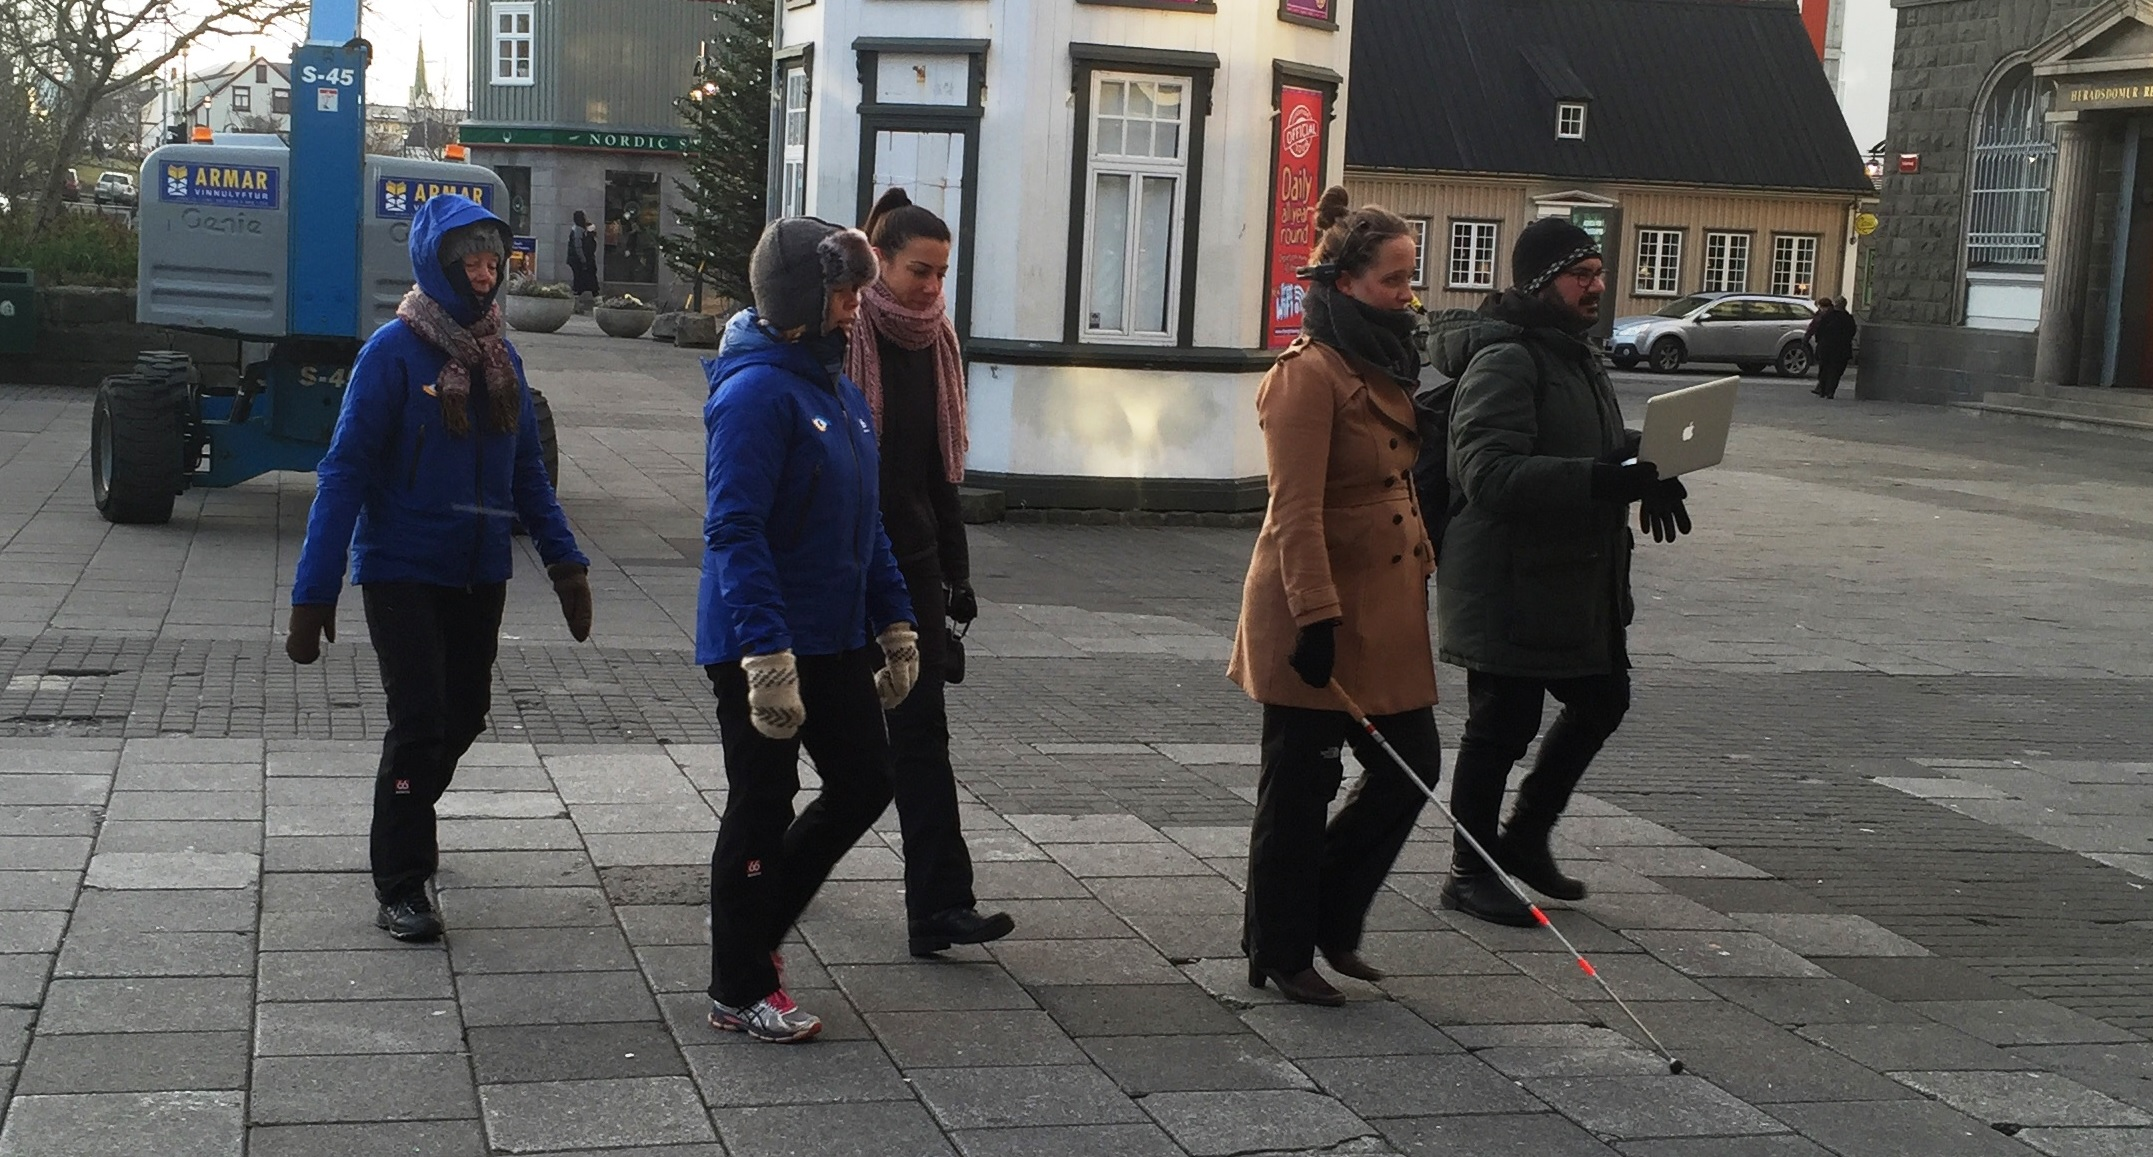 A group of participants navigating the city as part of an outdoor mobility study